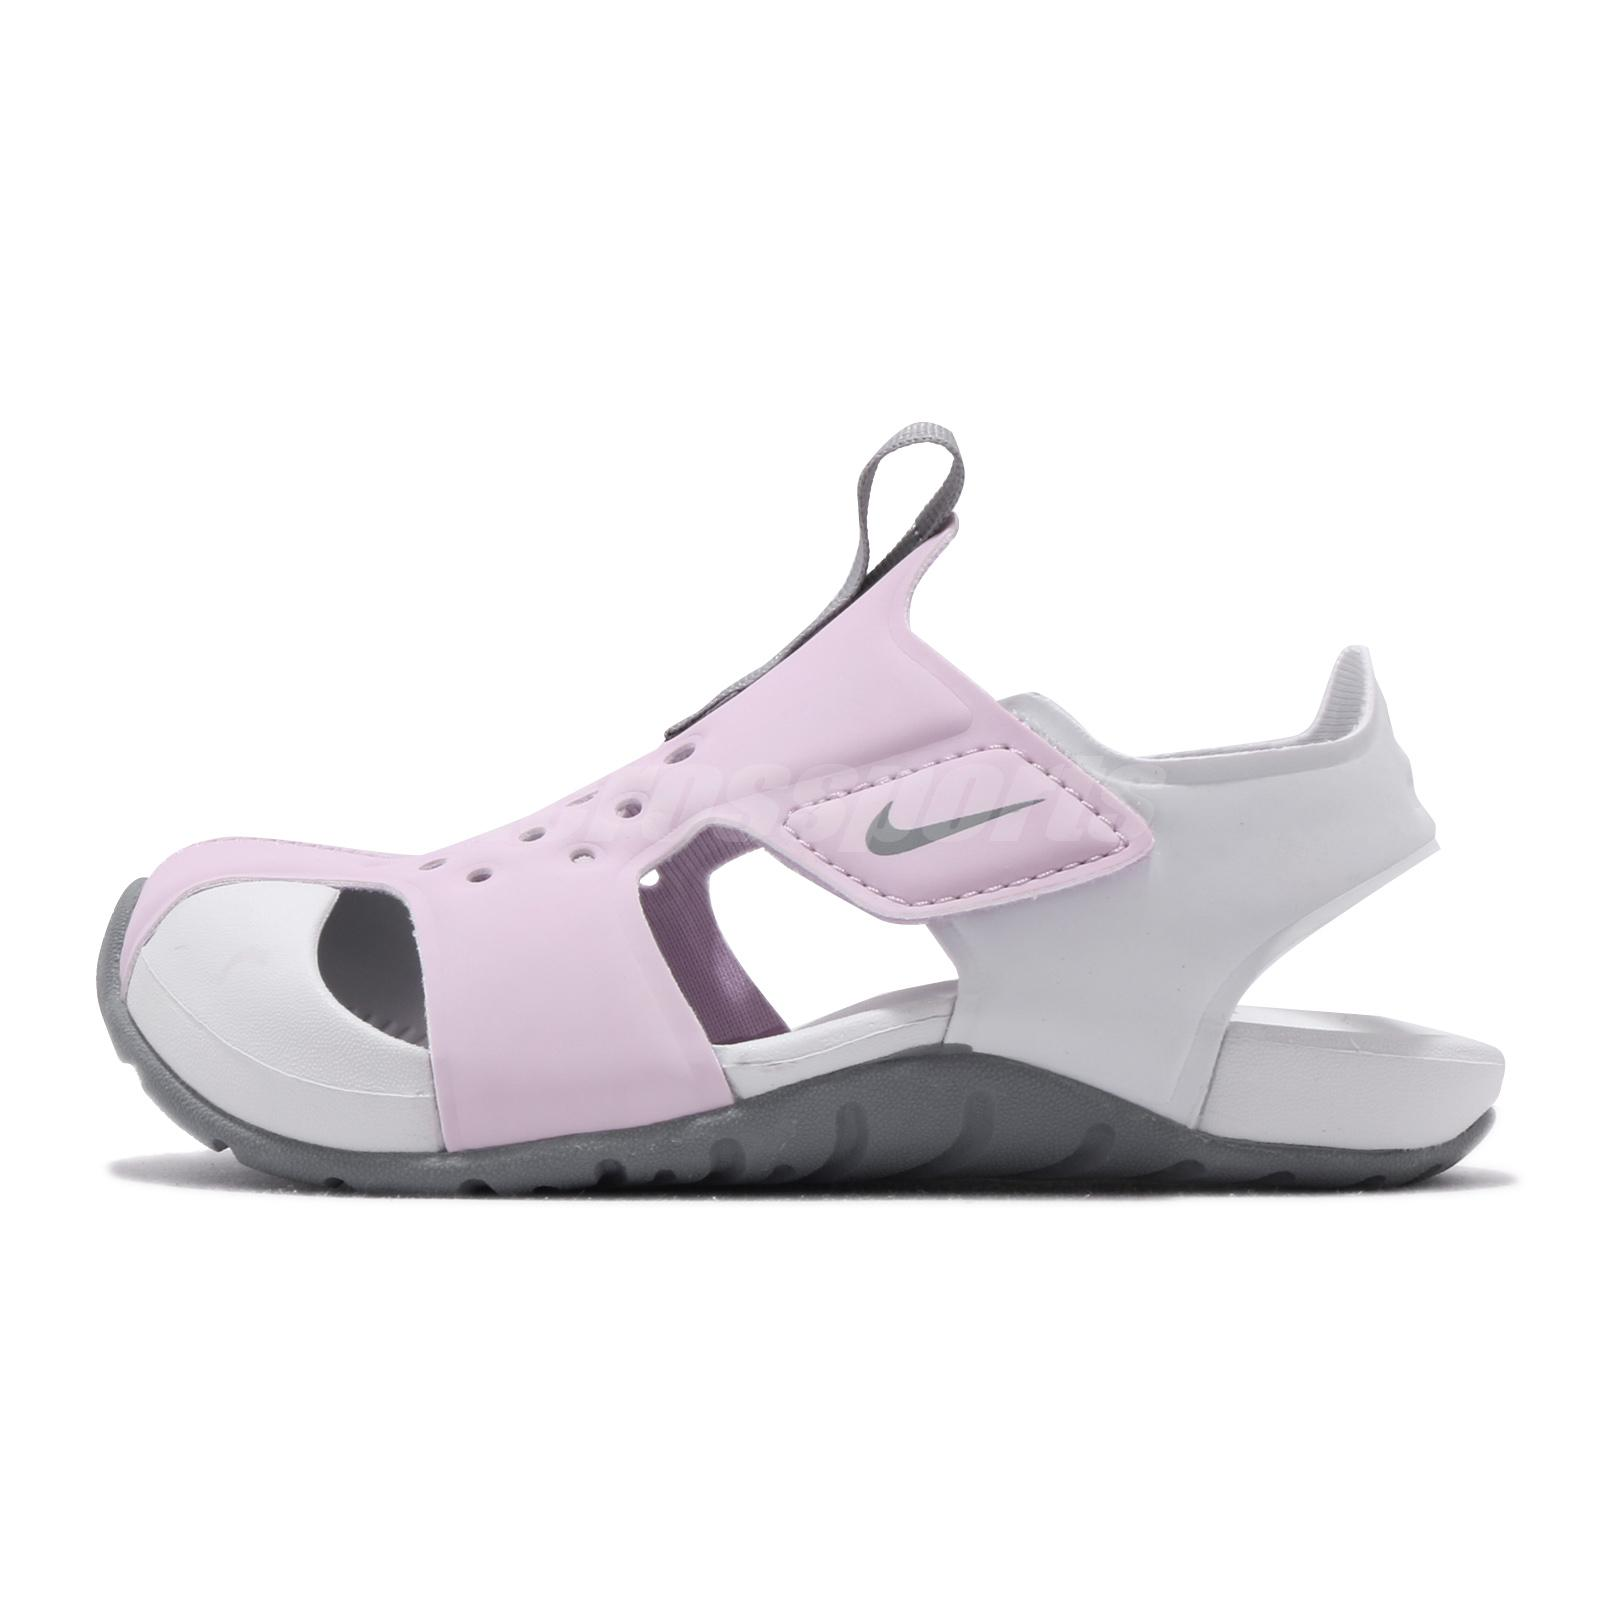 943826-602 PS Shoes Psychic Pink New Nike Preschool Sunray Protect 2 Sandal